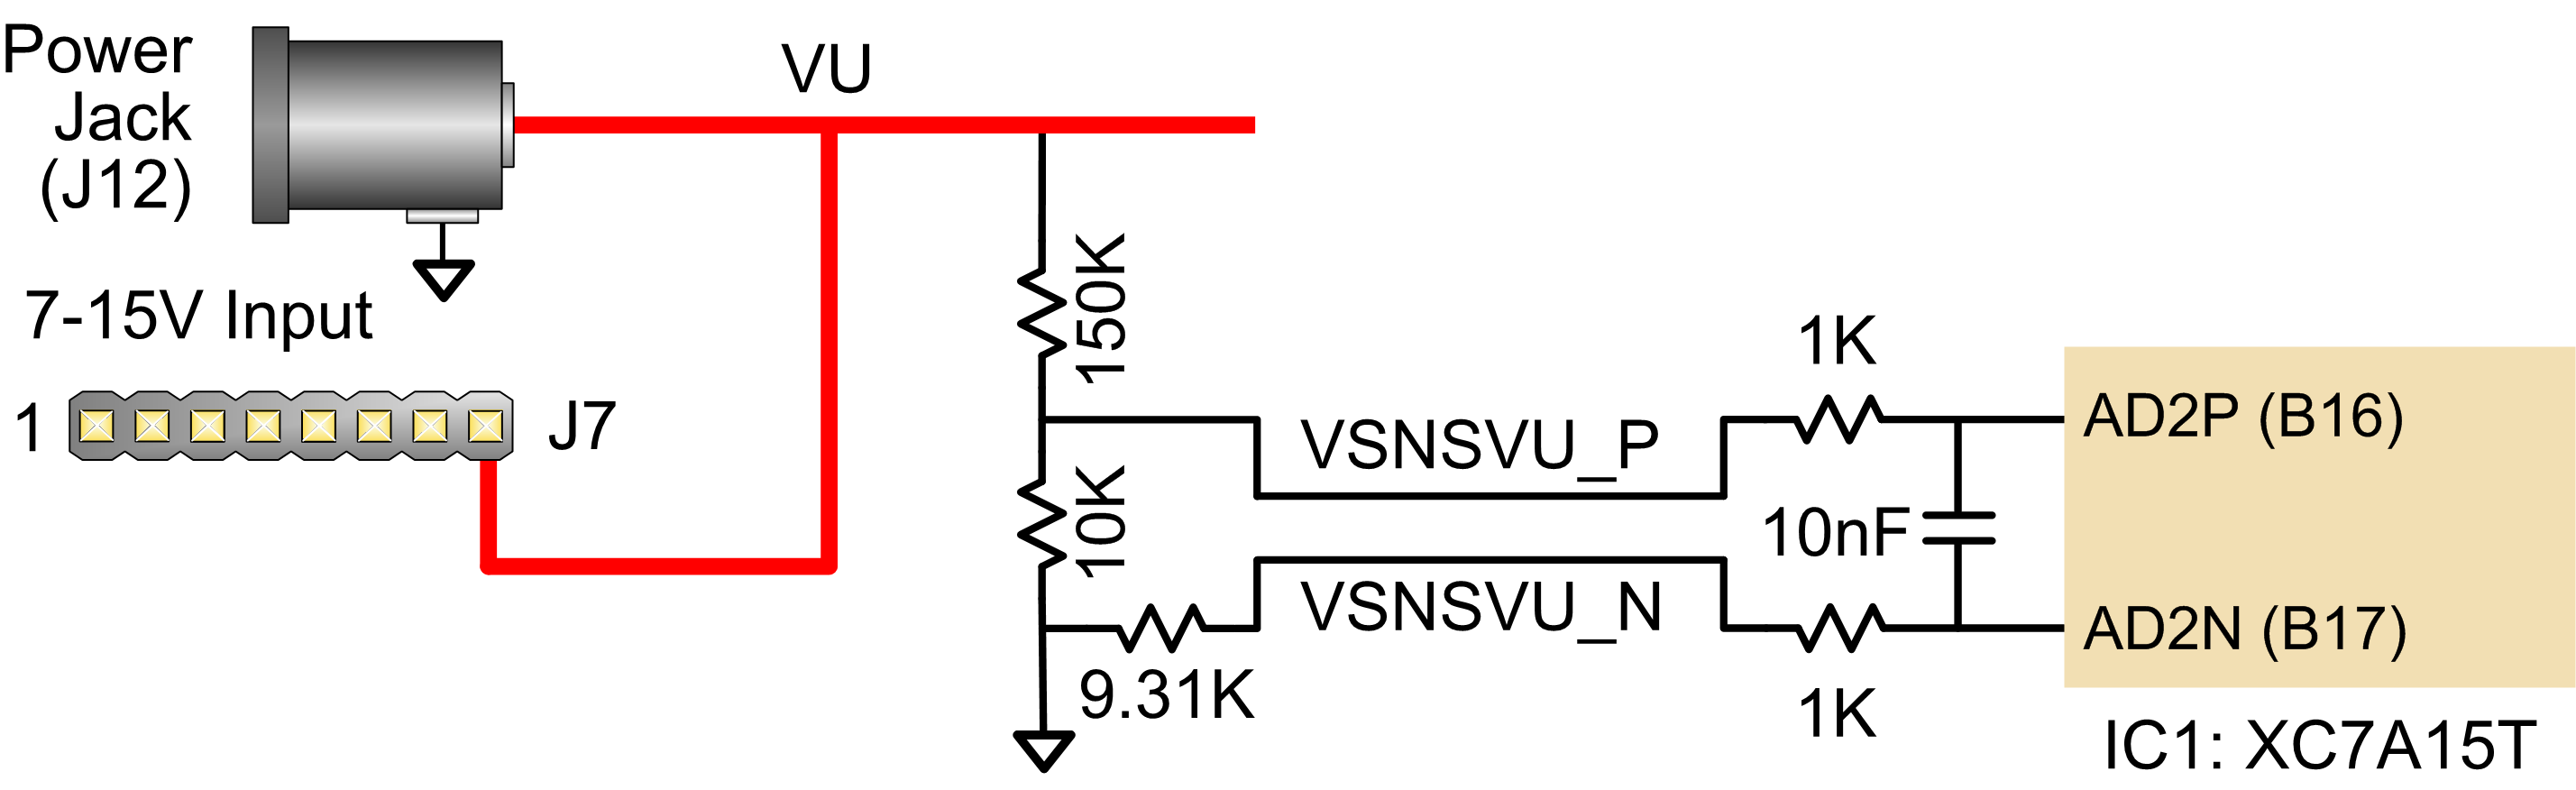 Figure 3.1.1. Monitoring external voltage supply.